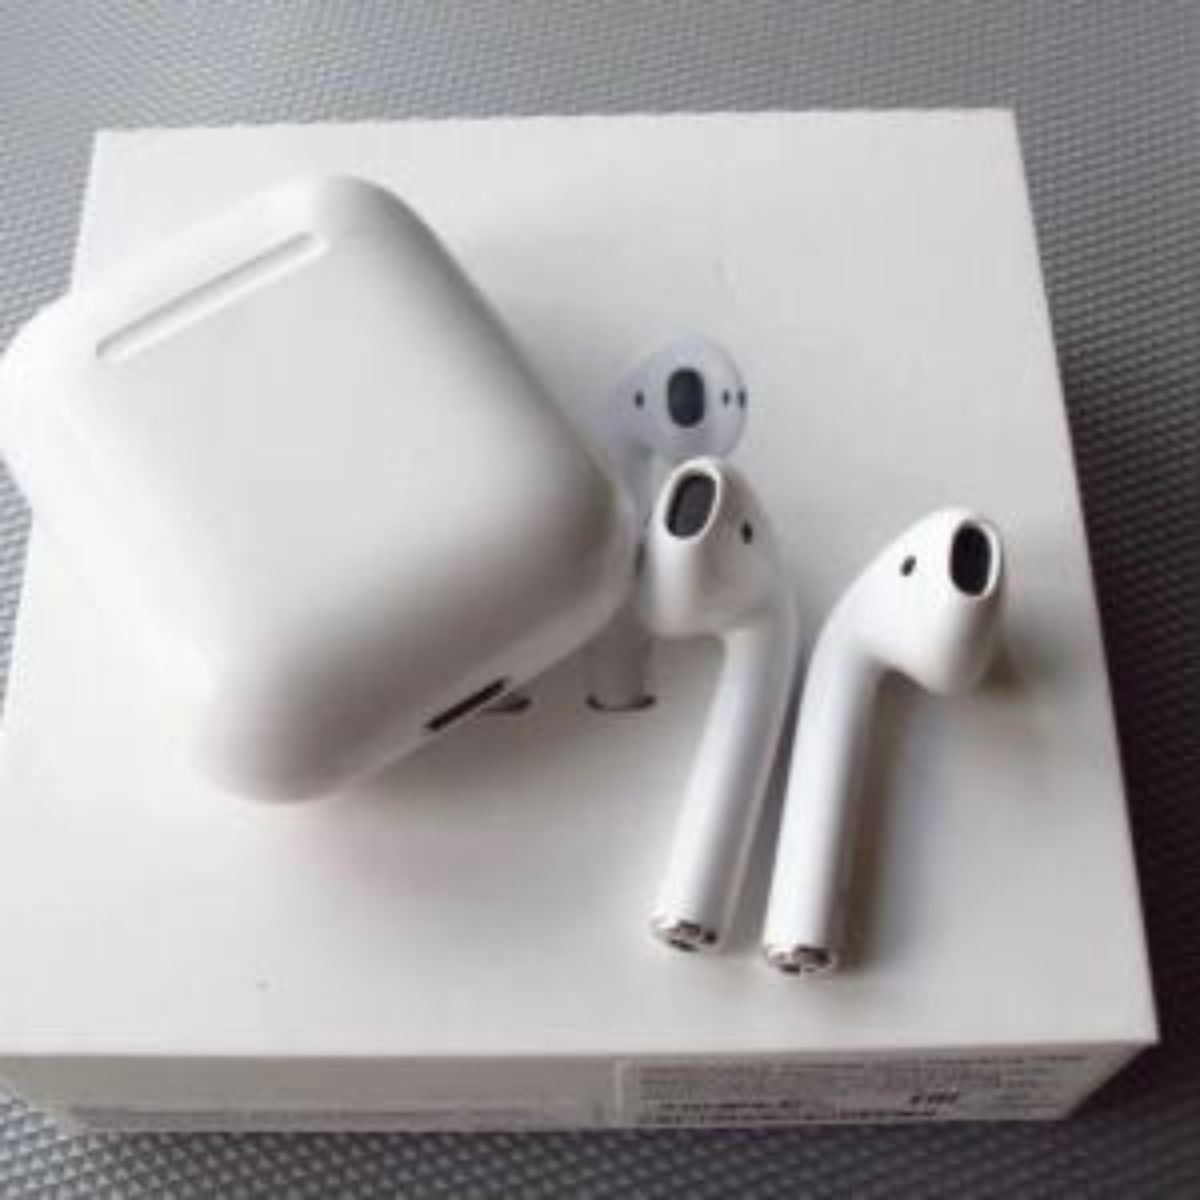 apple airpods 2 4 1 1